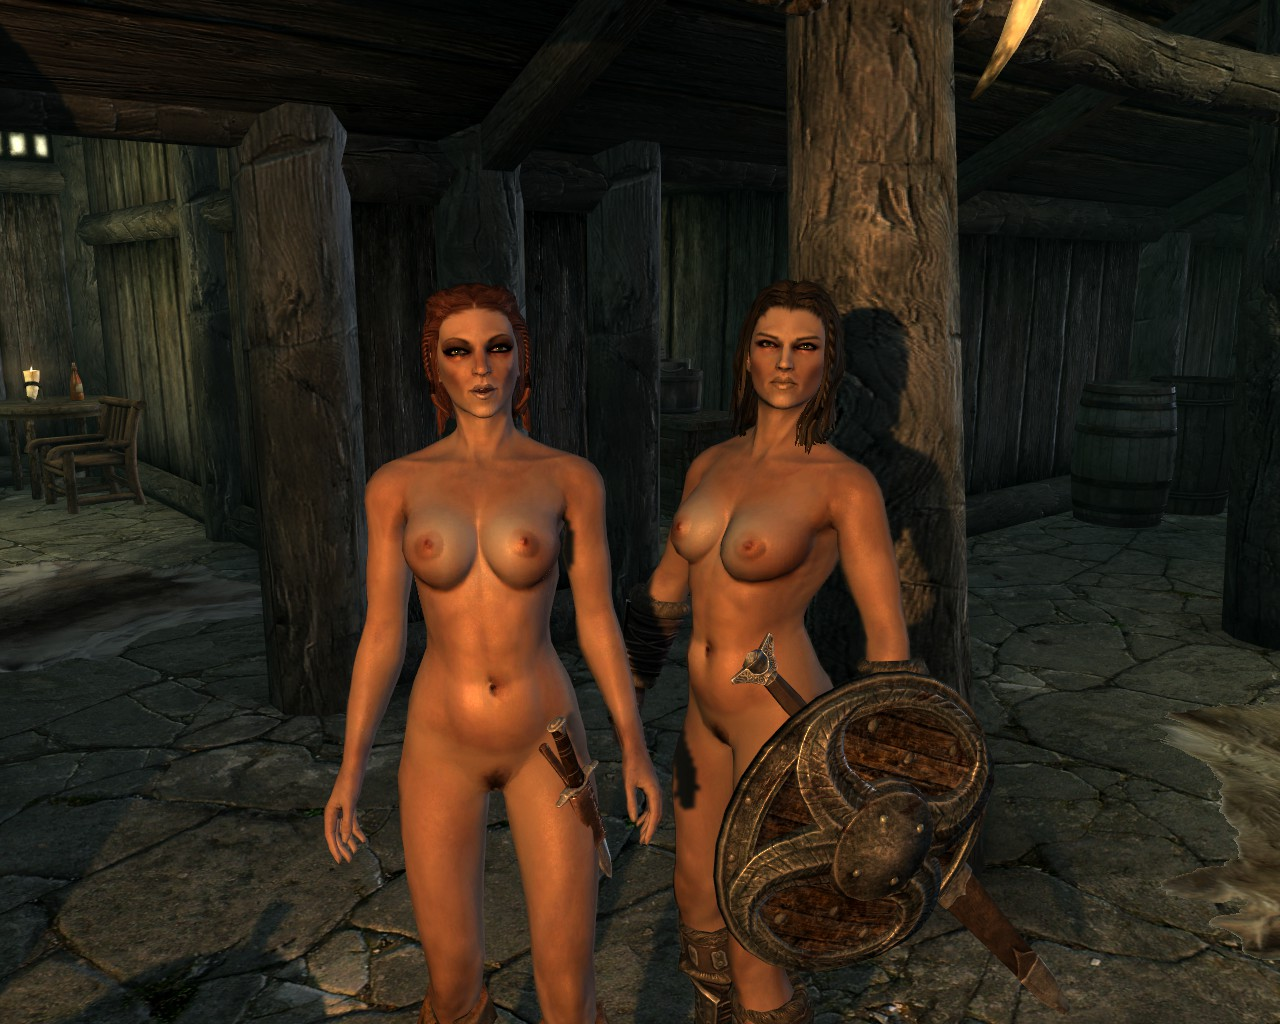 Nude videogame adult image